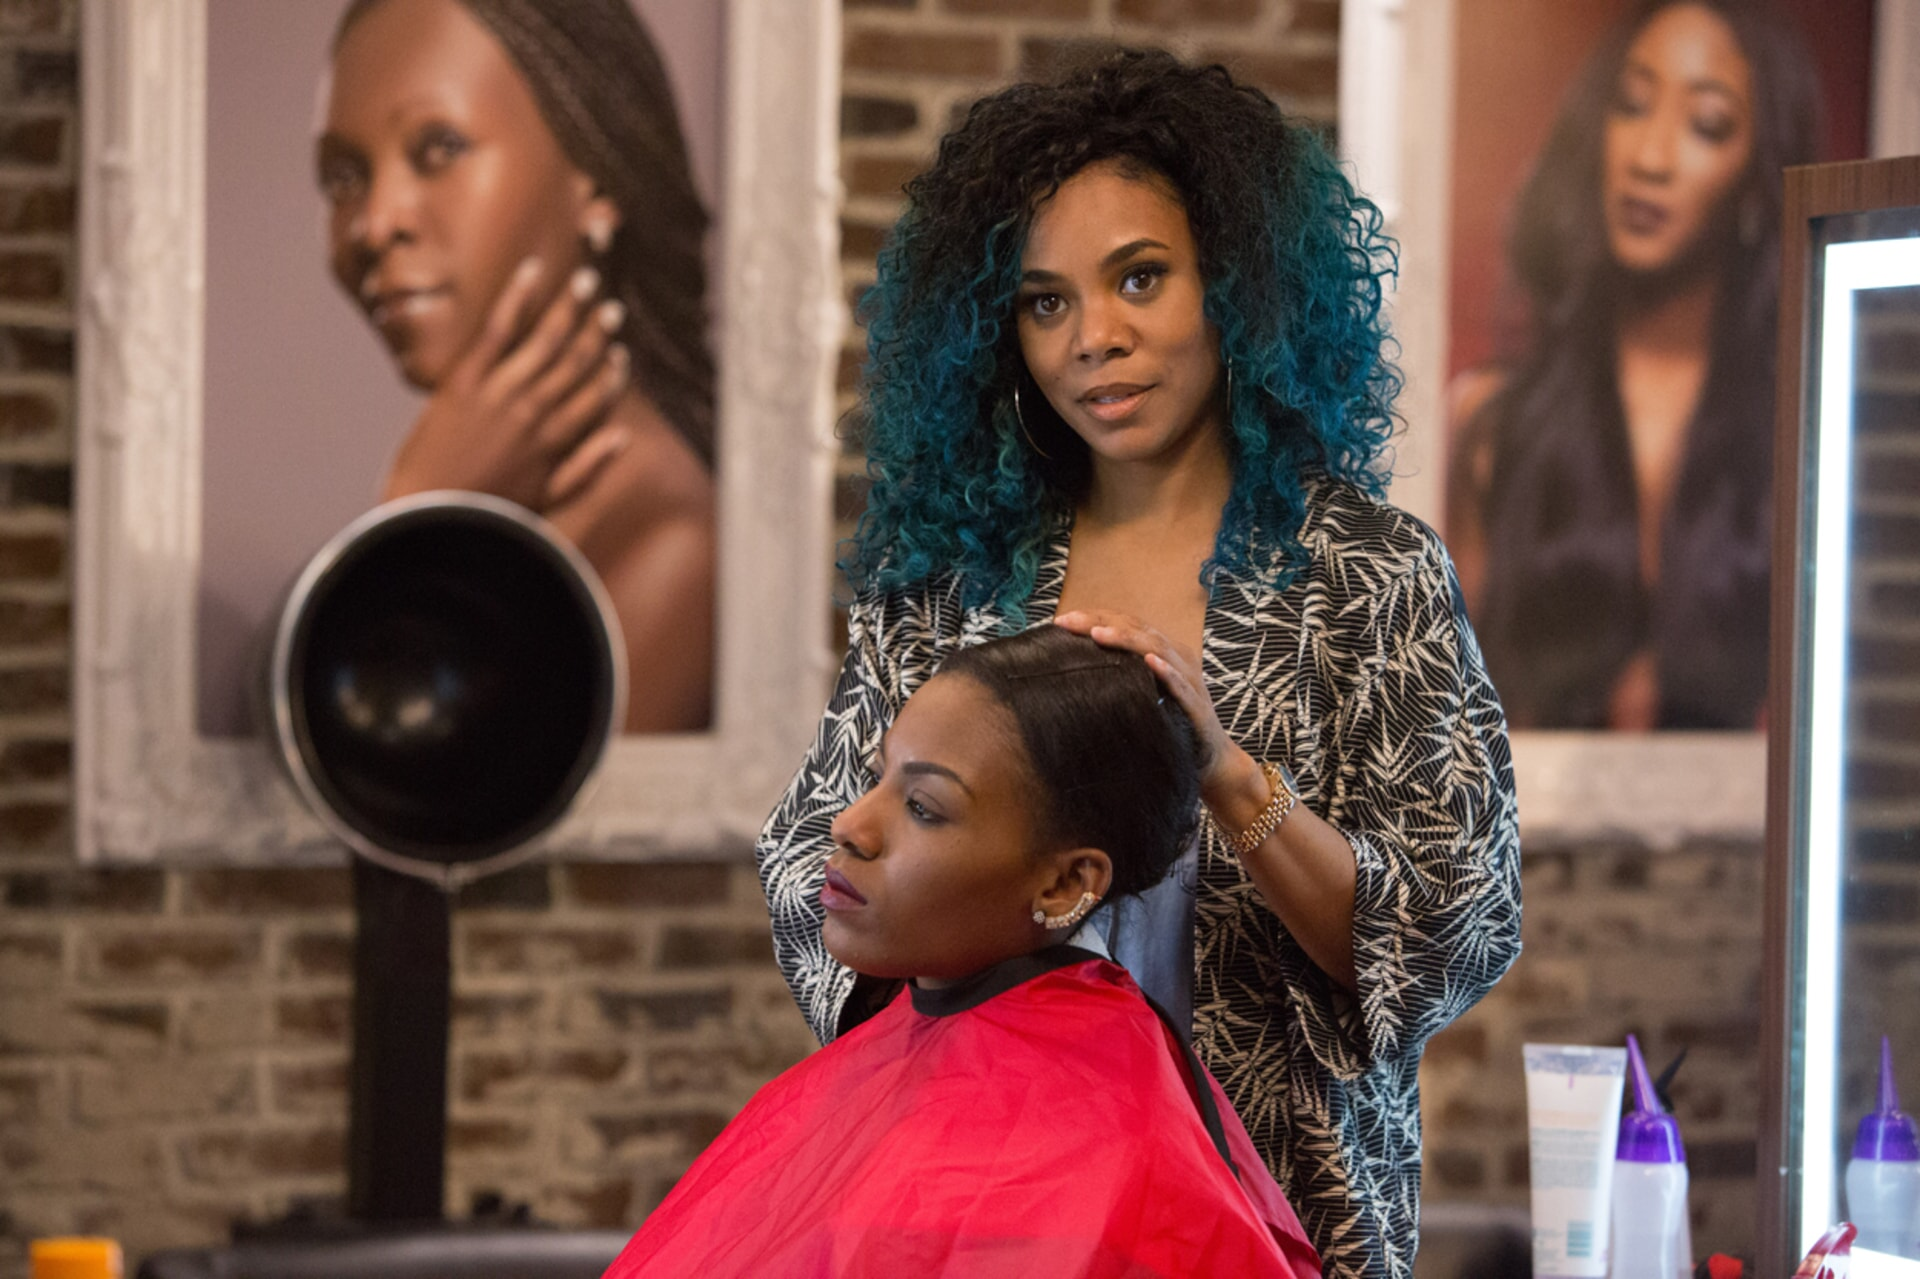 (Standing) REGINA HALL as Angie in Barbershop: The Next Cut